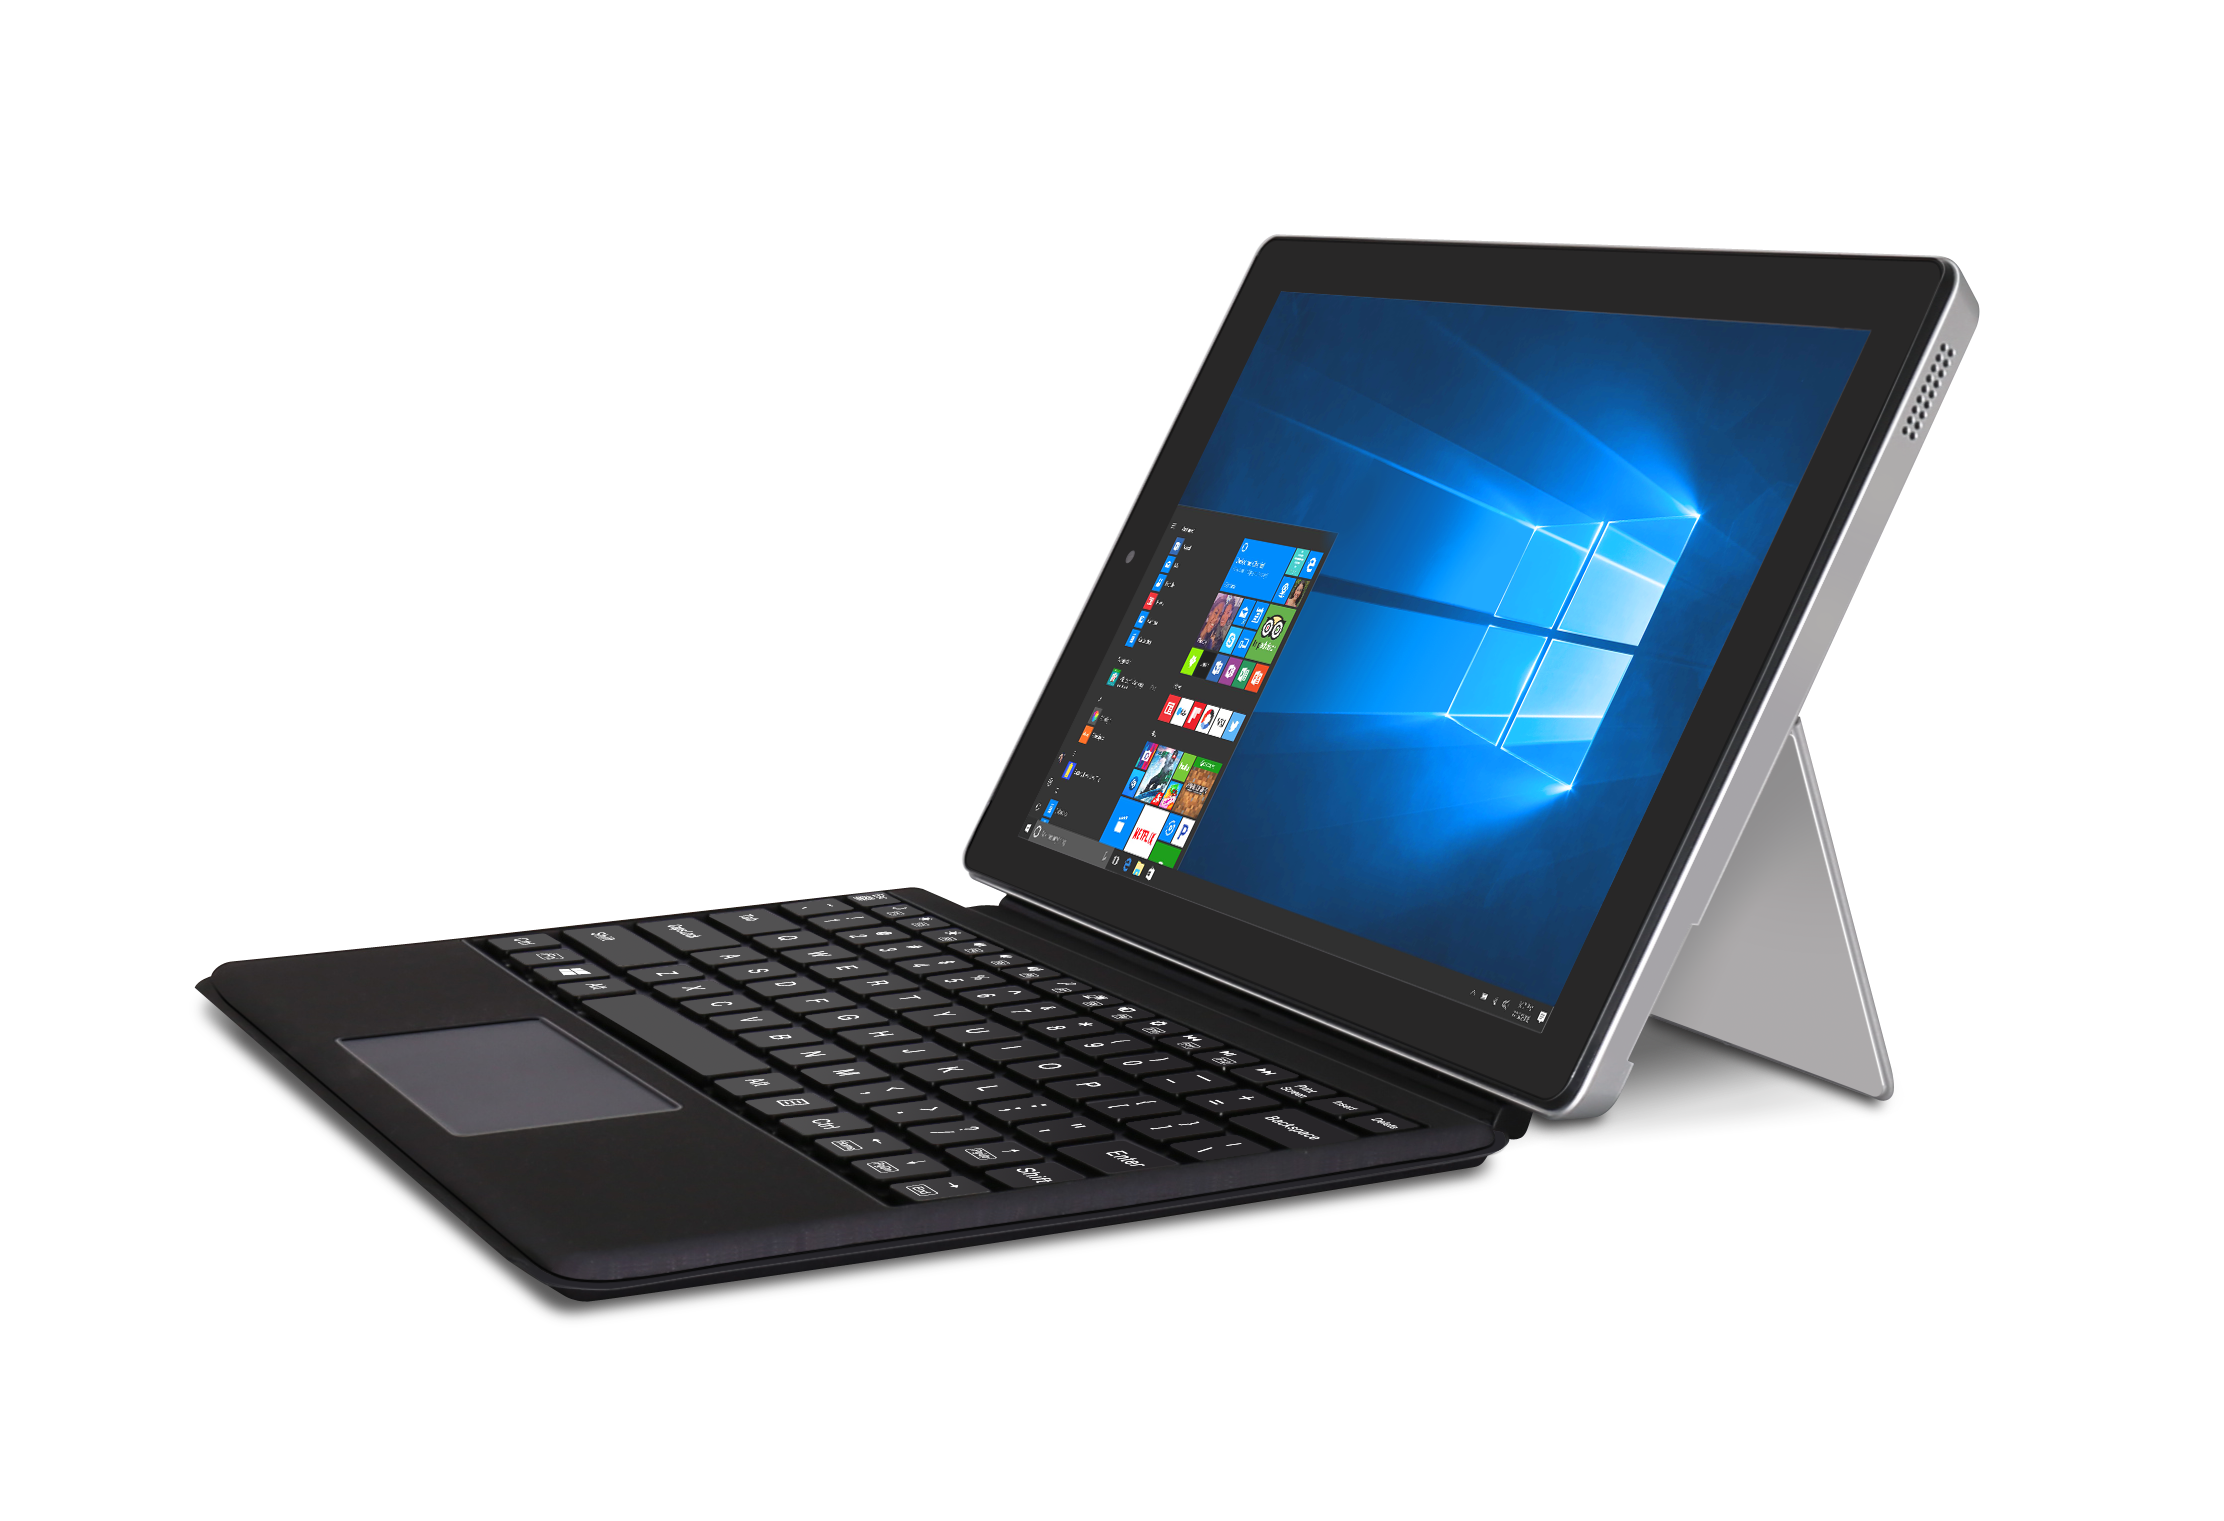 RCA Cambio 10 1-Inch (2-in-1) Windows Touchscreen Tablet/Notebook -  Detachable Keyboard & Dual Camera - 32GB, Bluetooth (W101SA23T2)